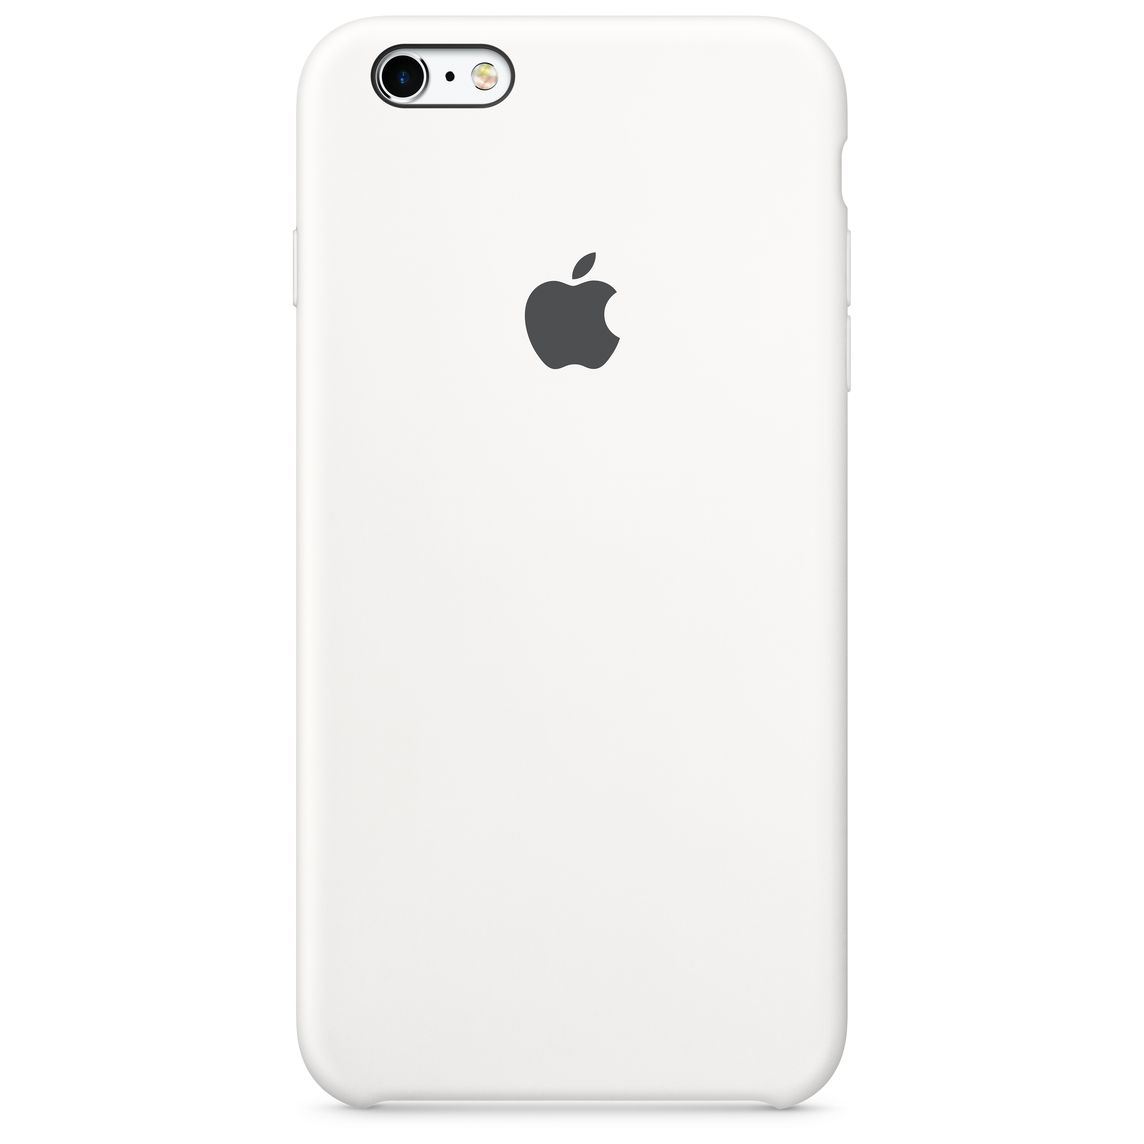 finest selection 49352 6258f iPhone 6 Plus / 6s Plus Silicone Case - White